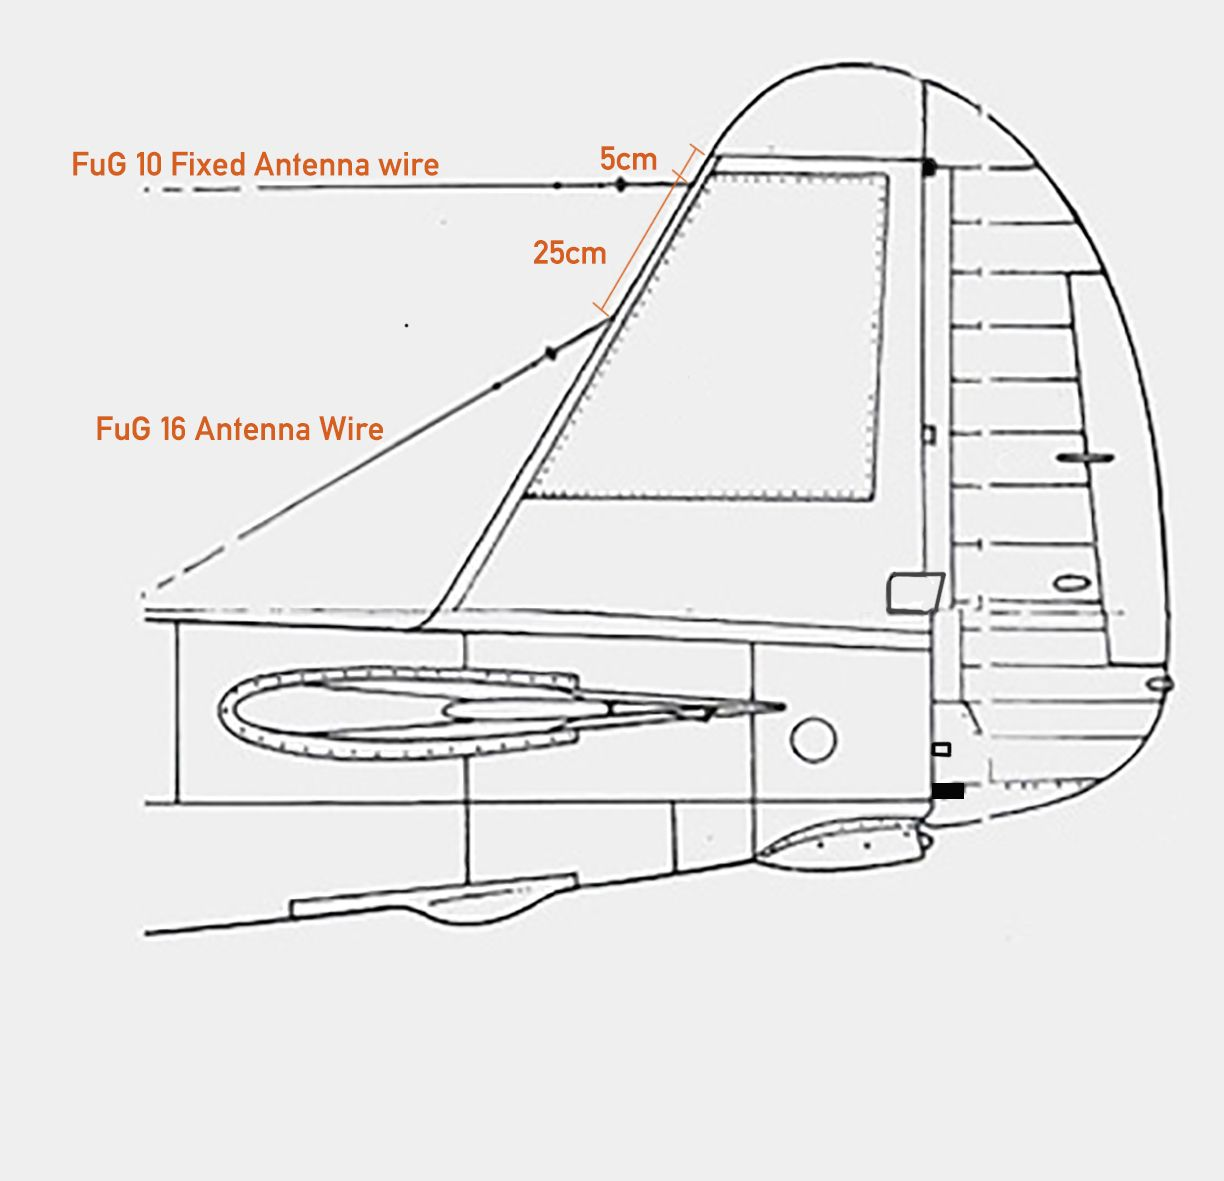 Ju 88a 1 Empennage Diagram Showing Connection Points Of